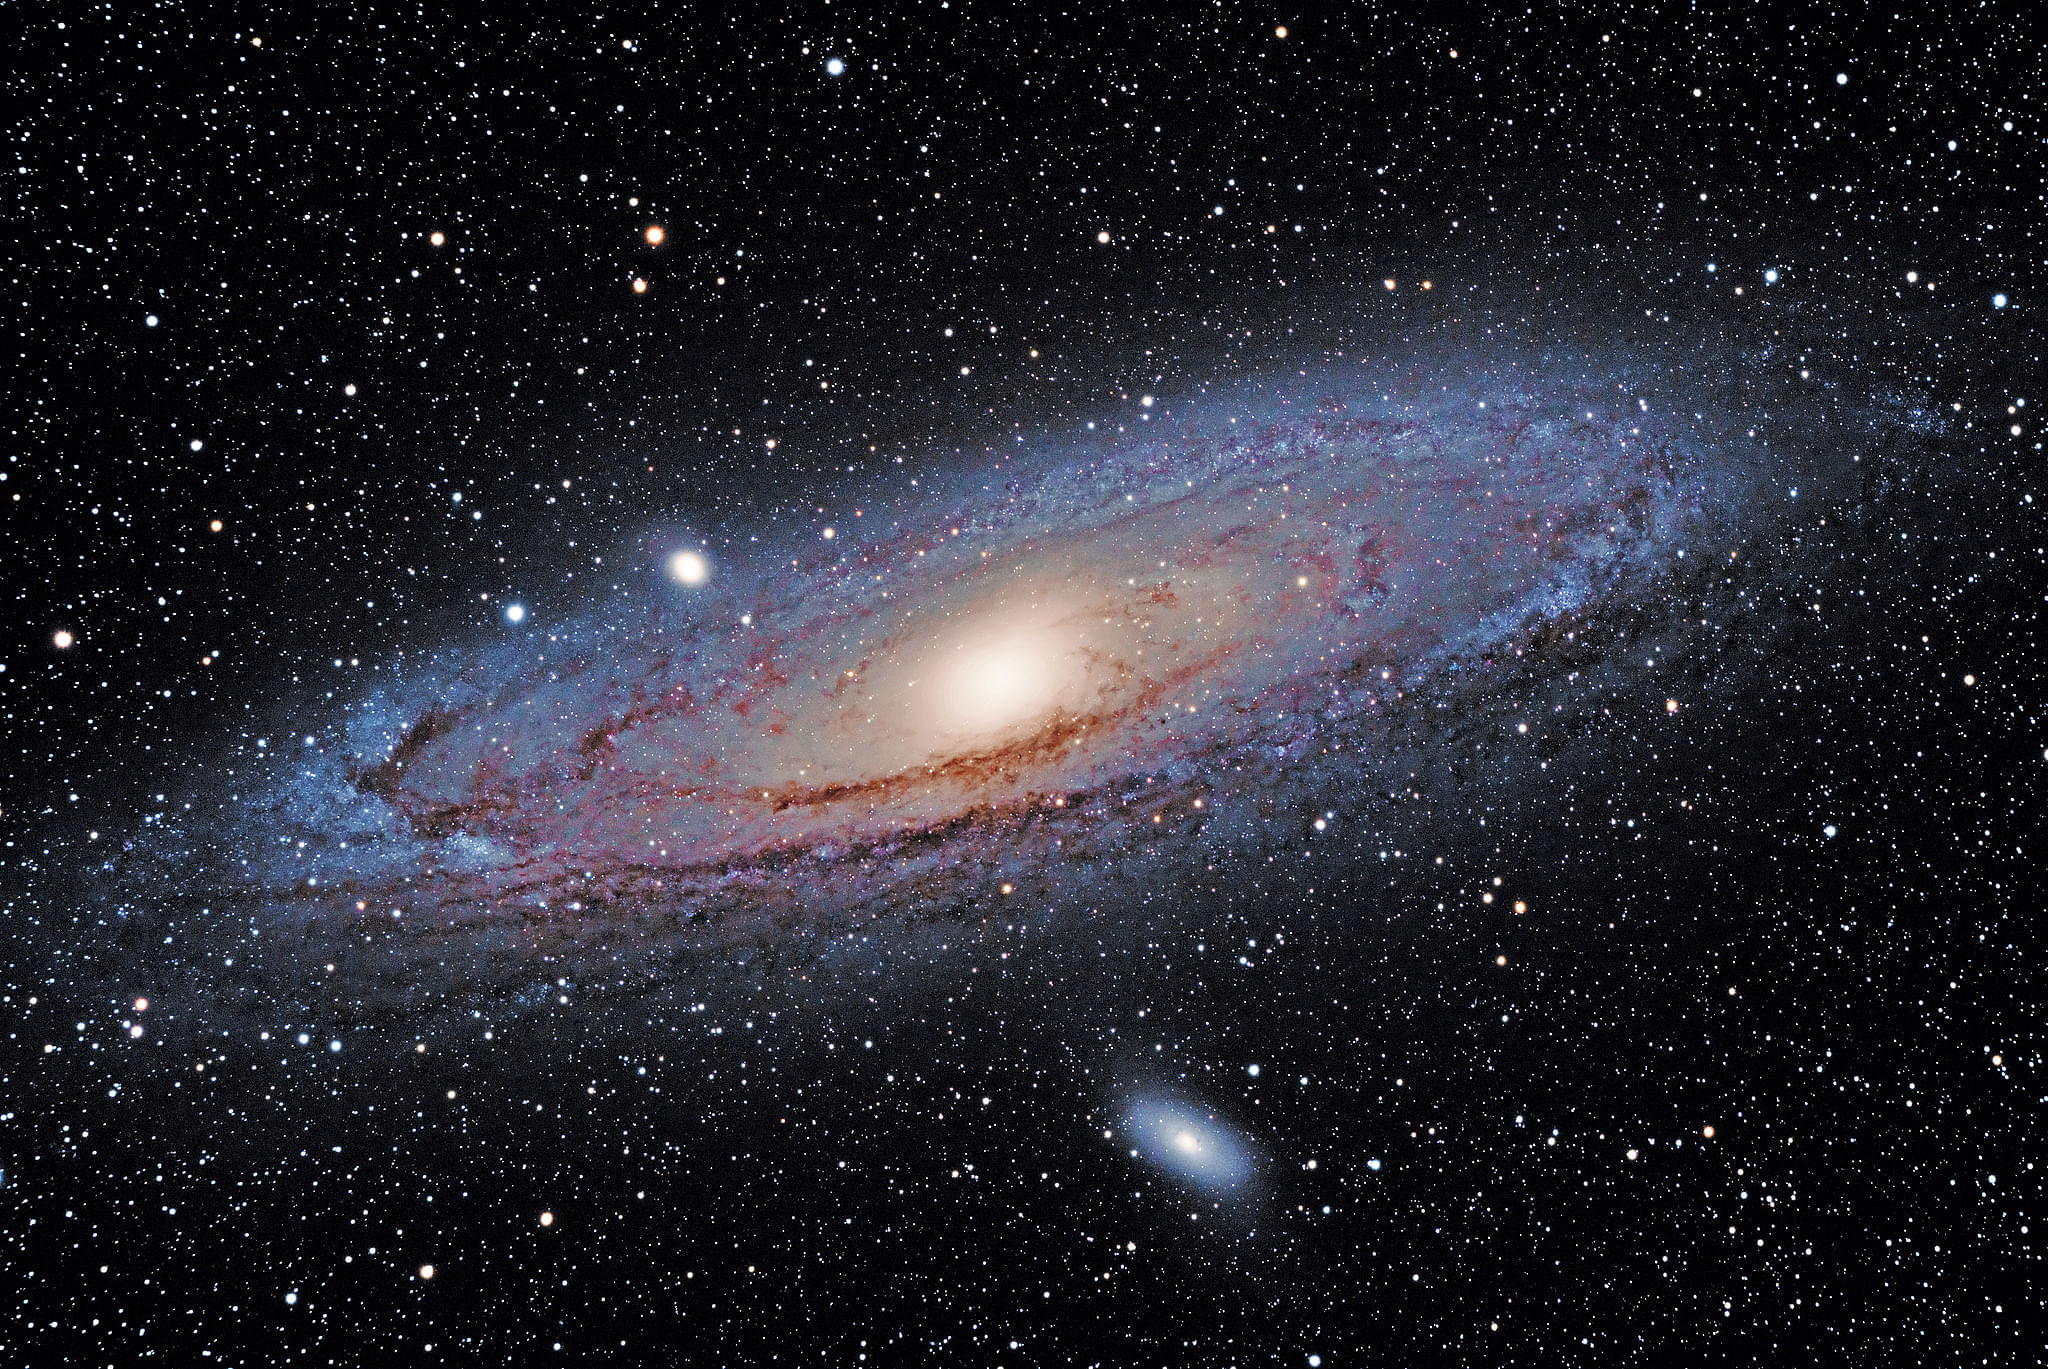 6 Indian Astronomers have Discovered 25 Extremely Rare Giant Radio Galaxies, Stunning the World